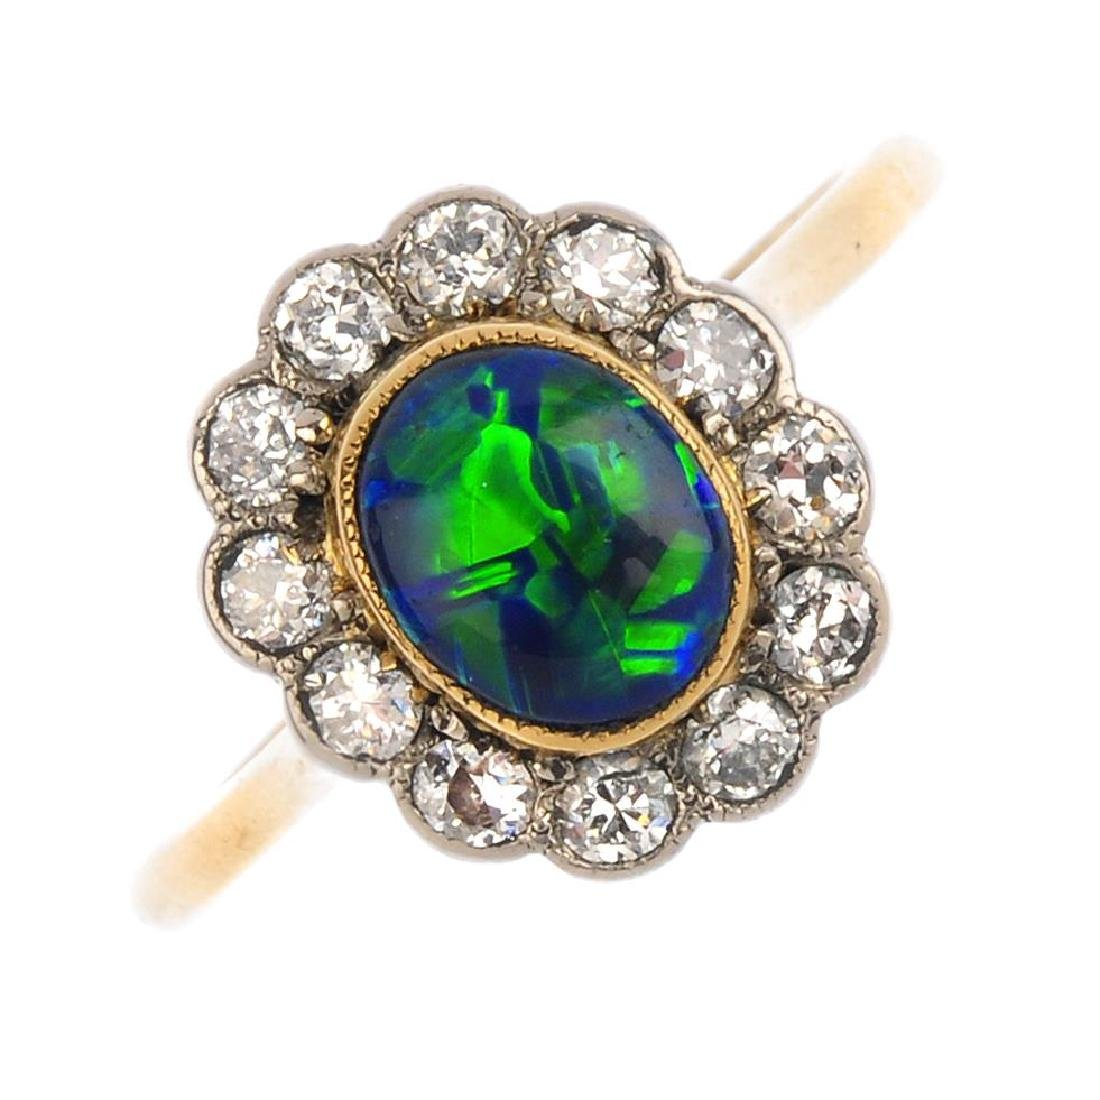 A black opal and diamond cluster ring. The oval opal